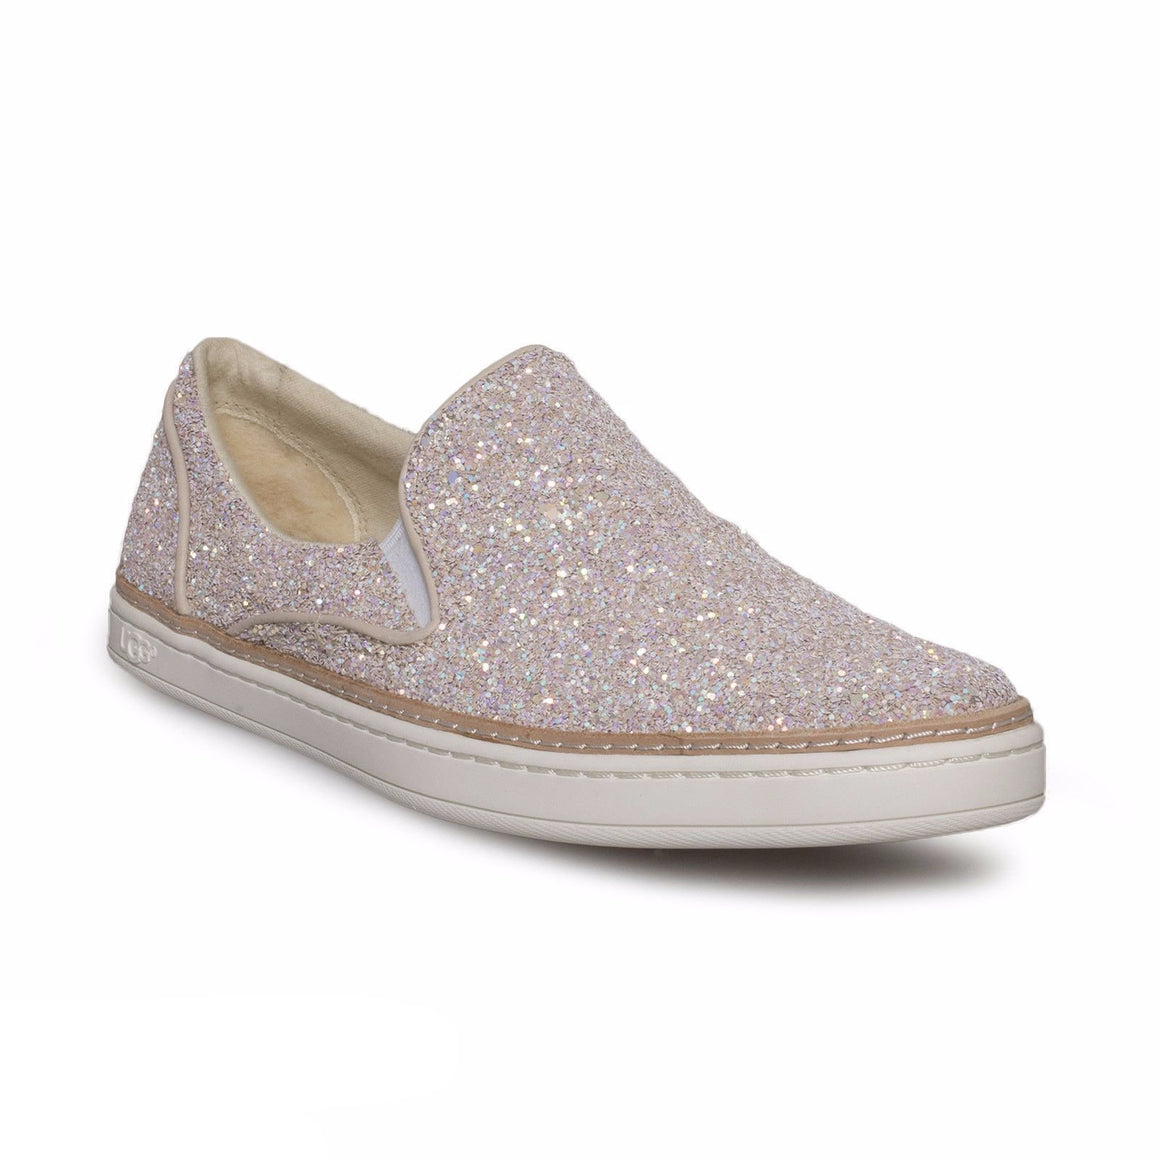 UGG Adley Chunky Glitter Powder Shoe